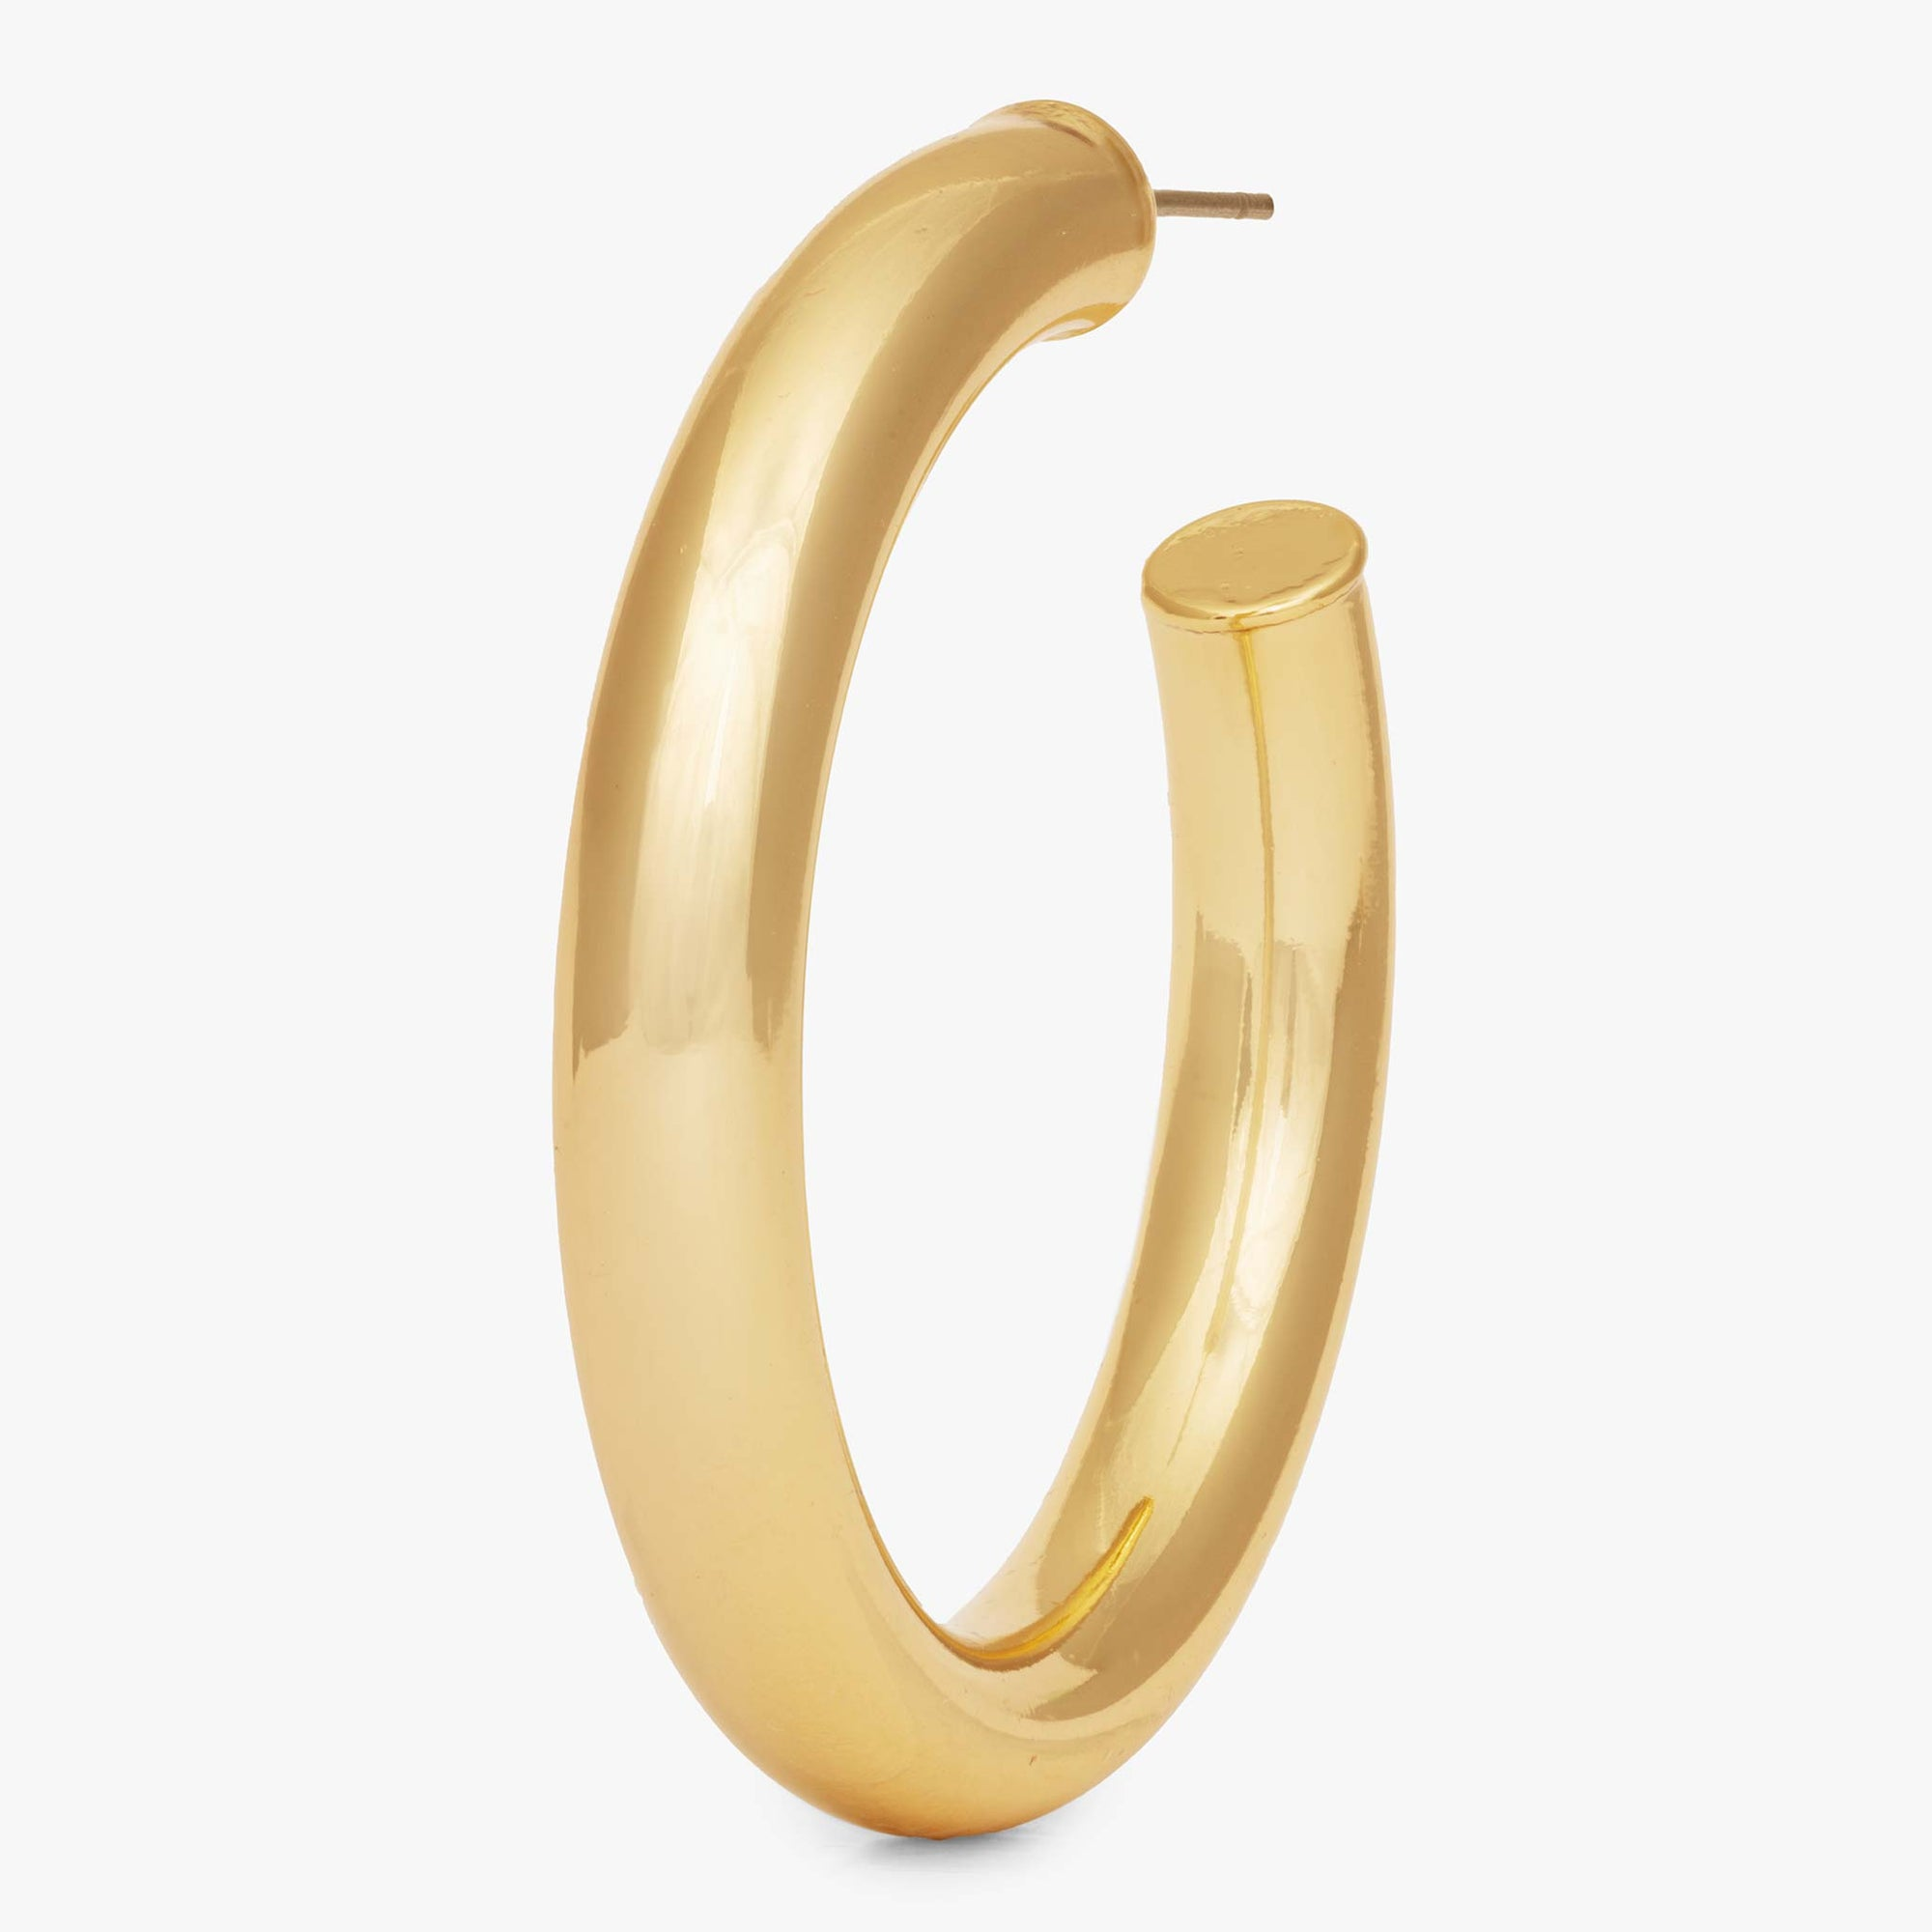 Large hollow tube-like hoop. color:gold